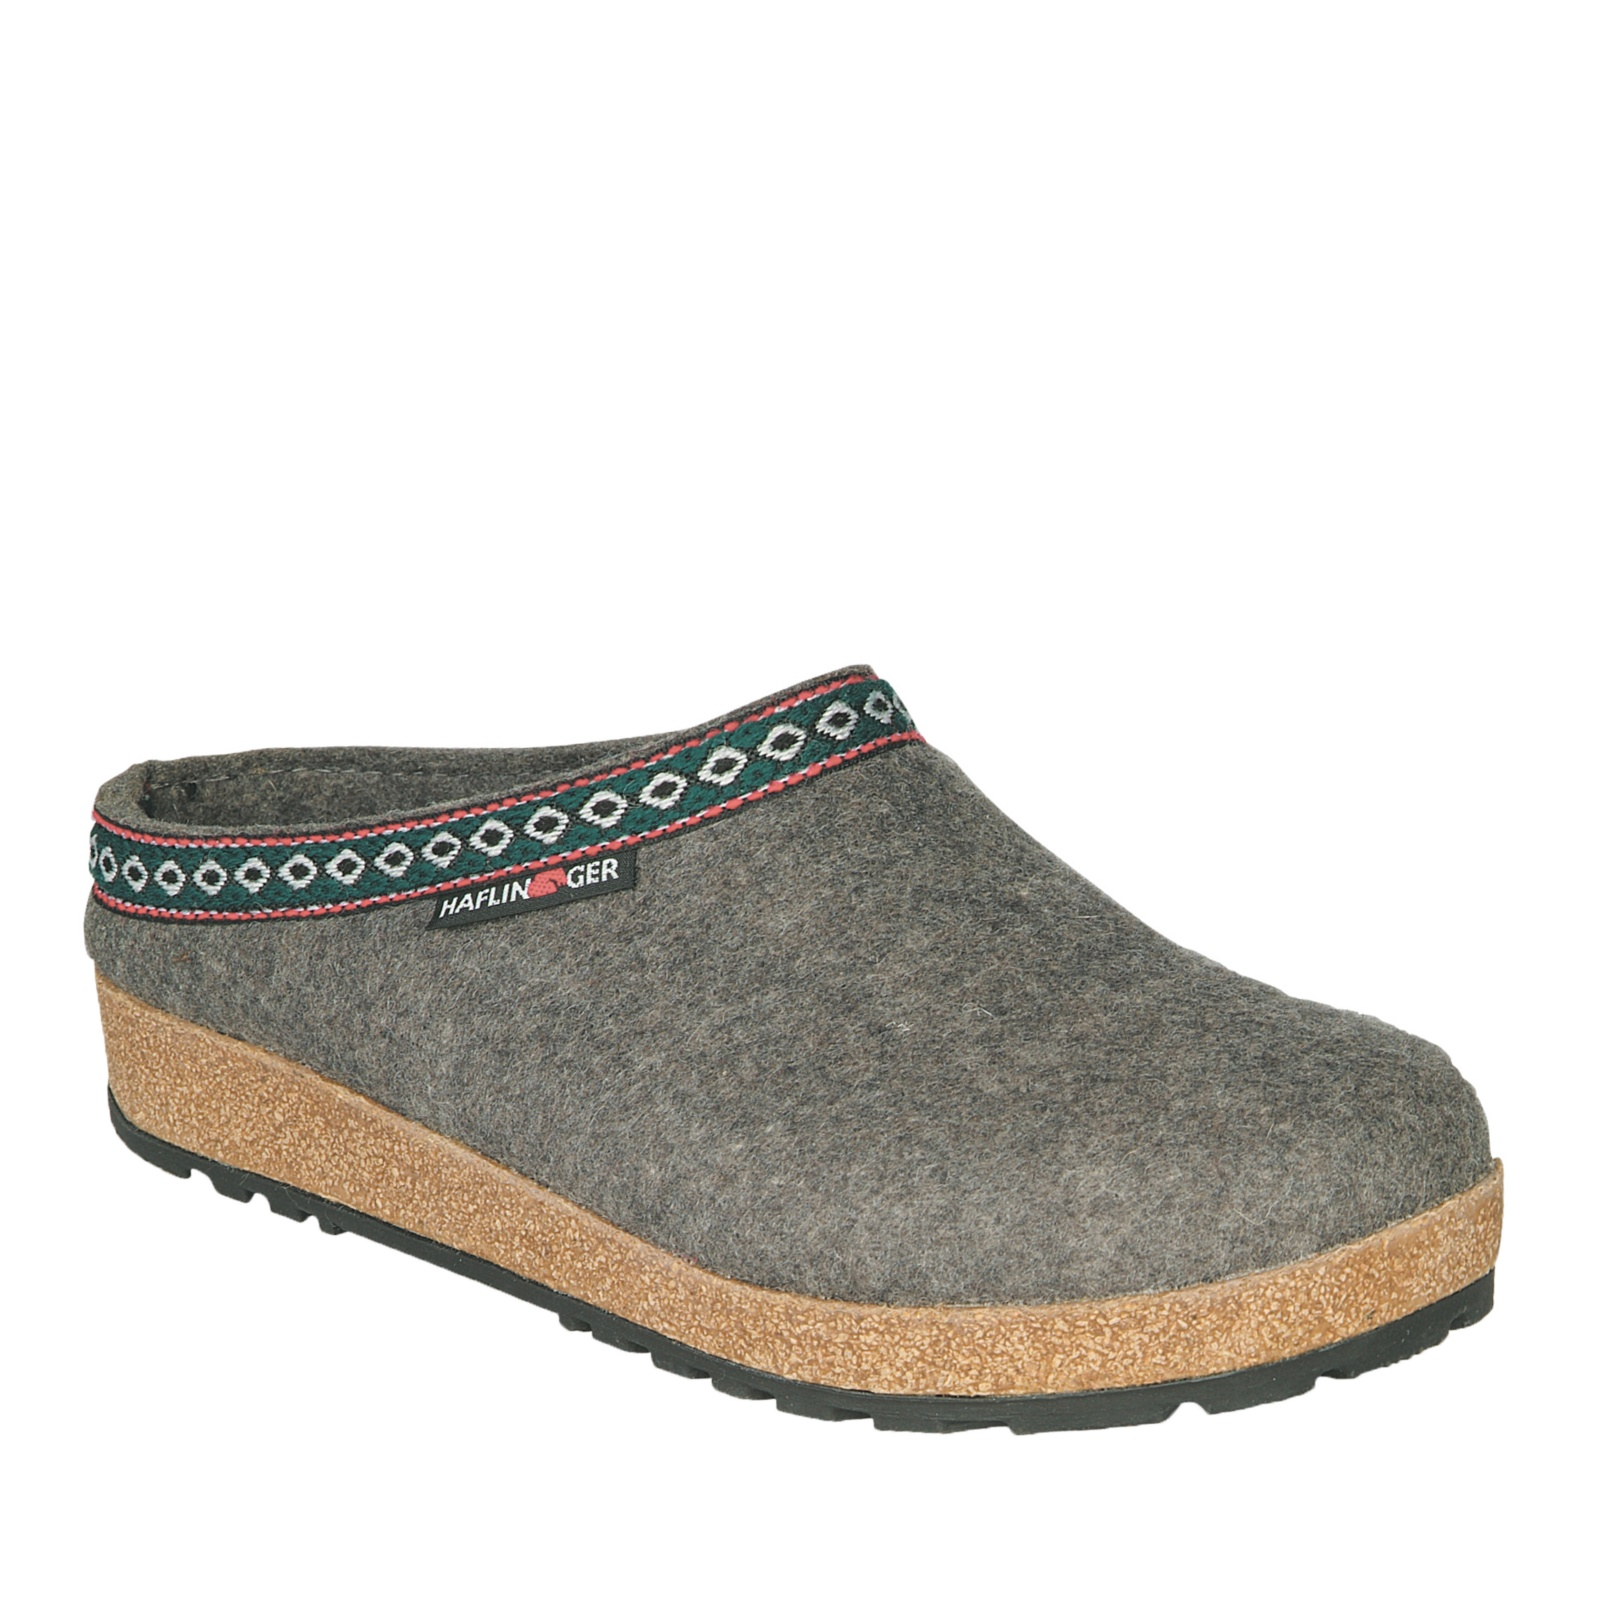 Grizzly Womens Shoes